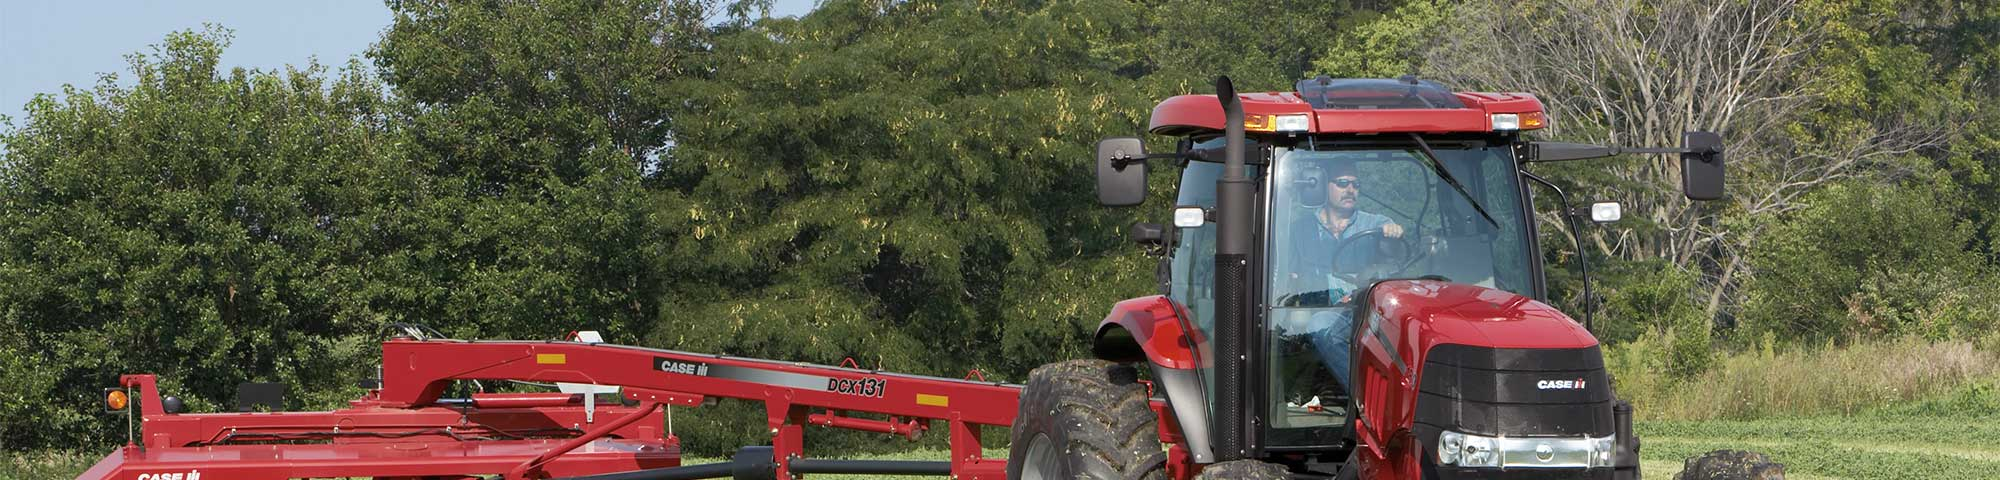 Used Tractors For Sale By Weyers Equipment, Inc  - 11